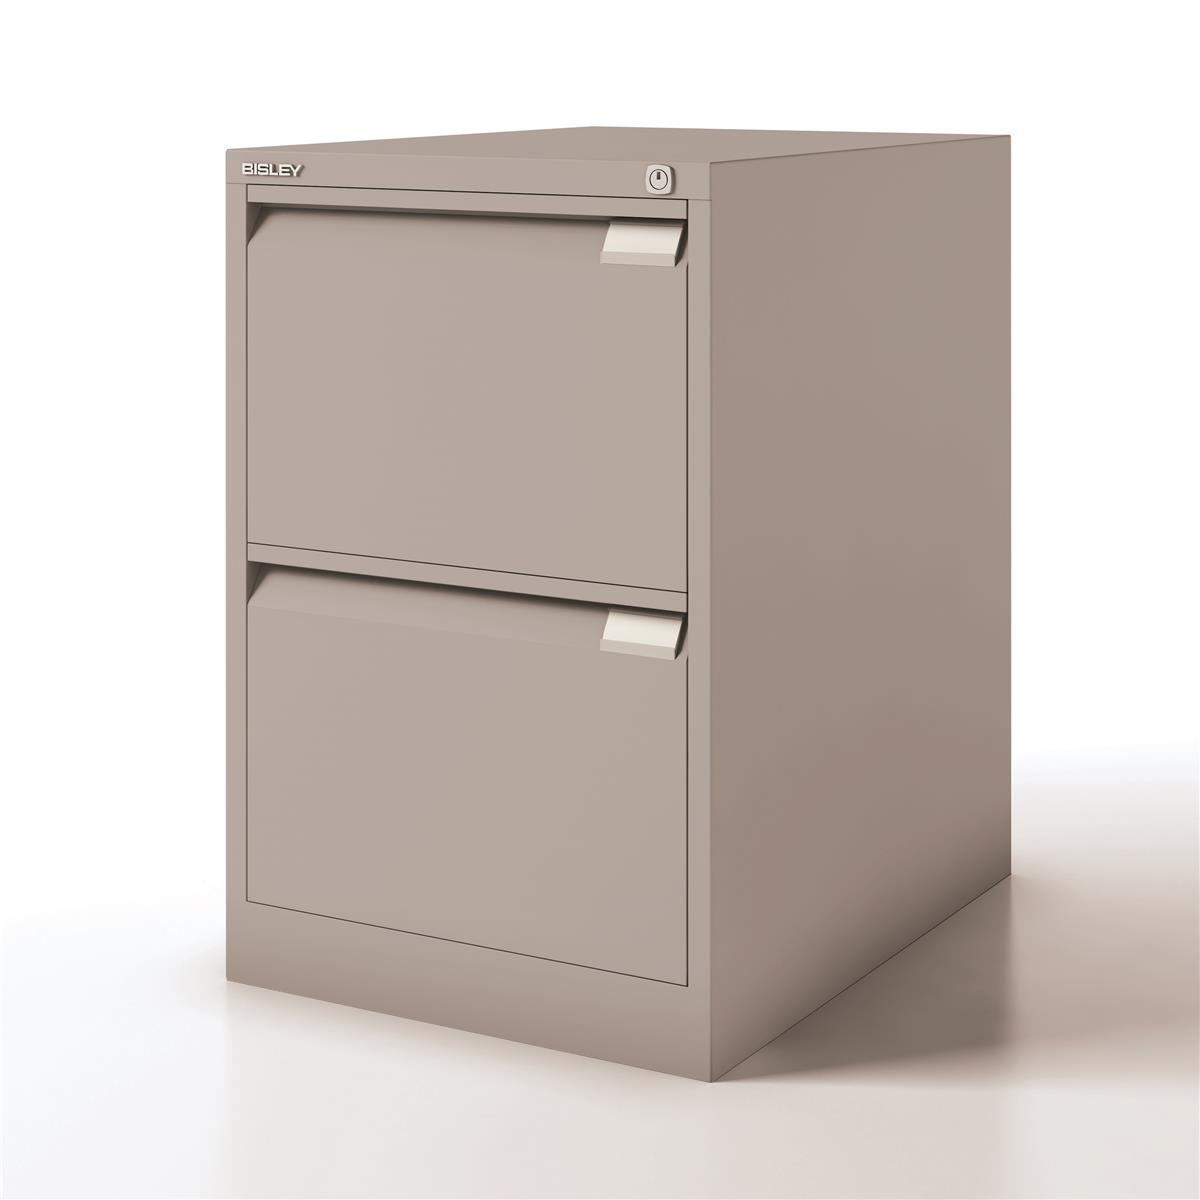 Bisley Filing Cabinet 2 Drawer 470x622x711mm Ref 1623-av4